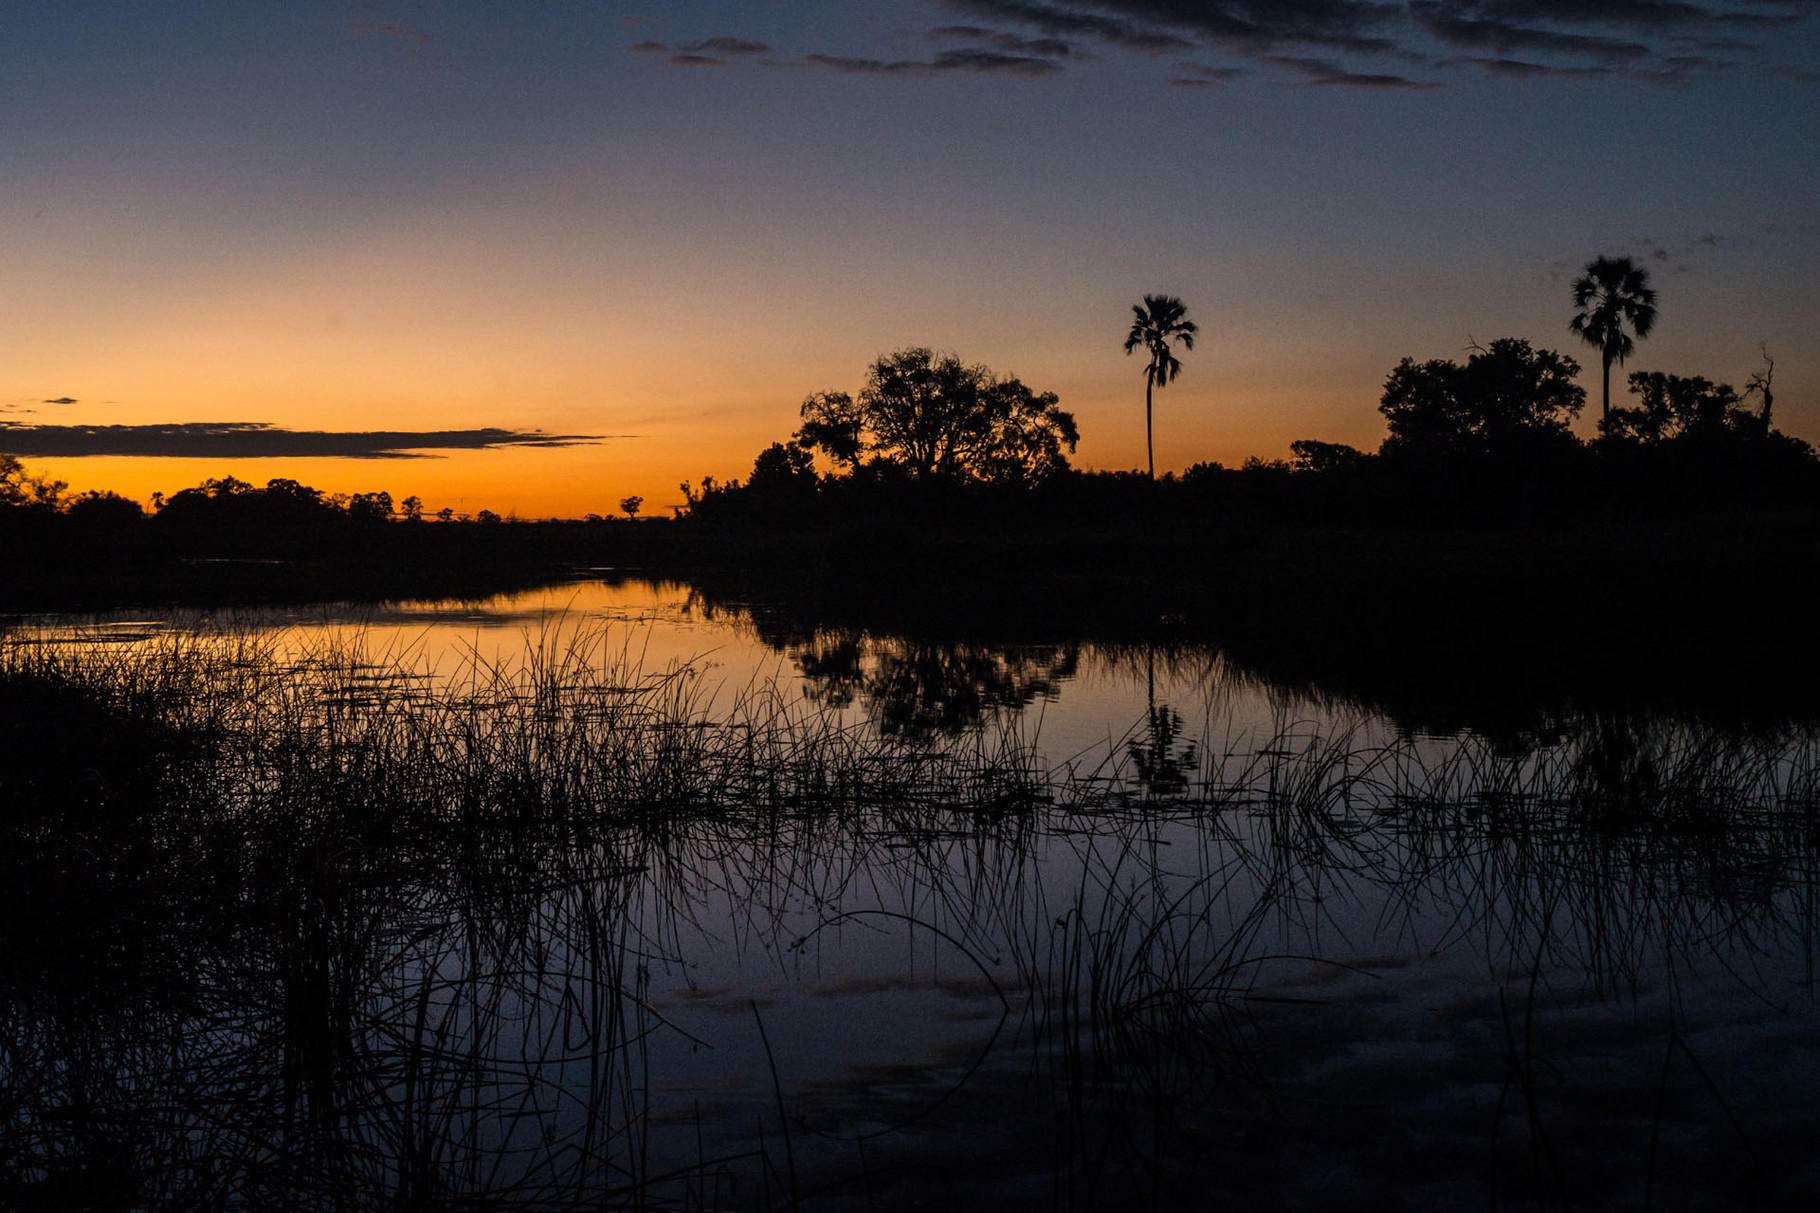 Sunrise in the Okavango delta